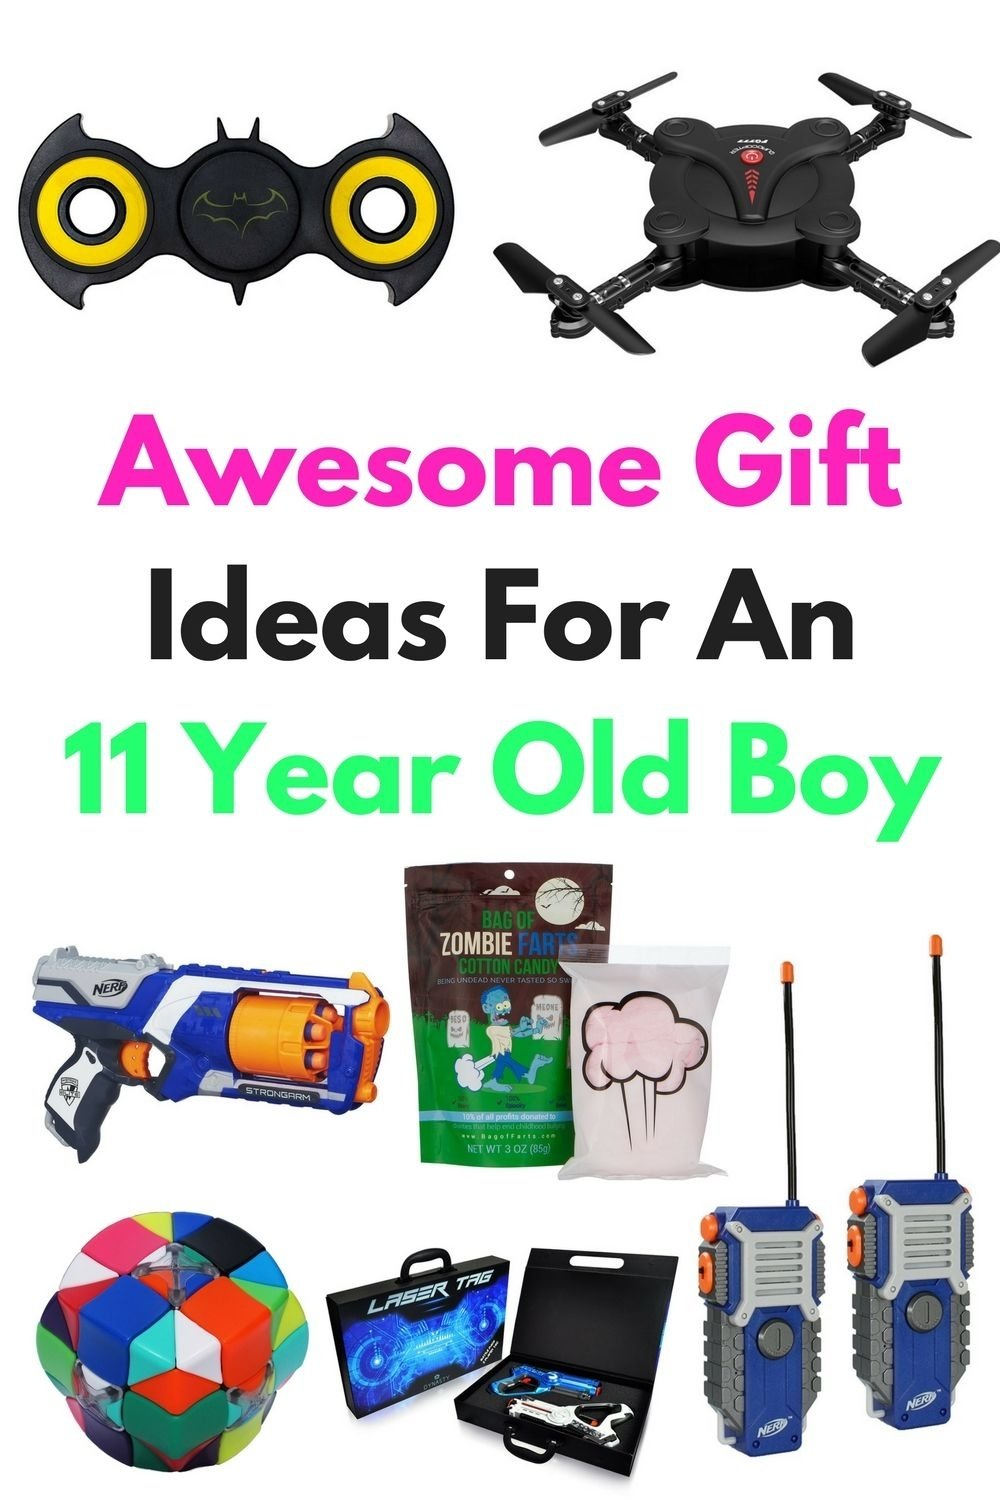 10 Wonderful Birthday Gift Ideas For 12 Year Old Boy Awesome An 11